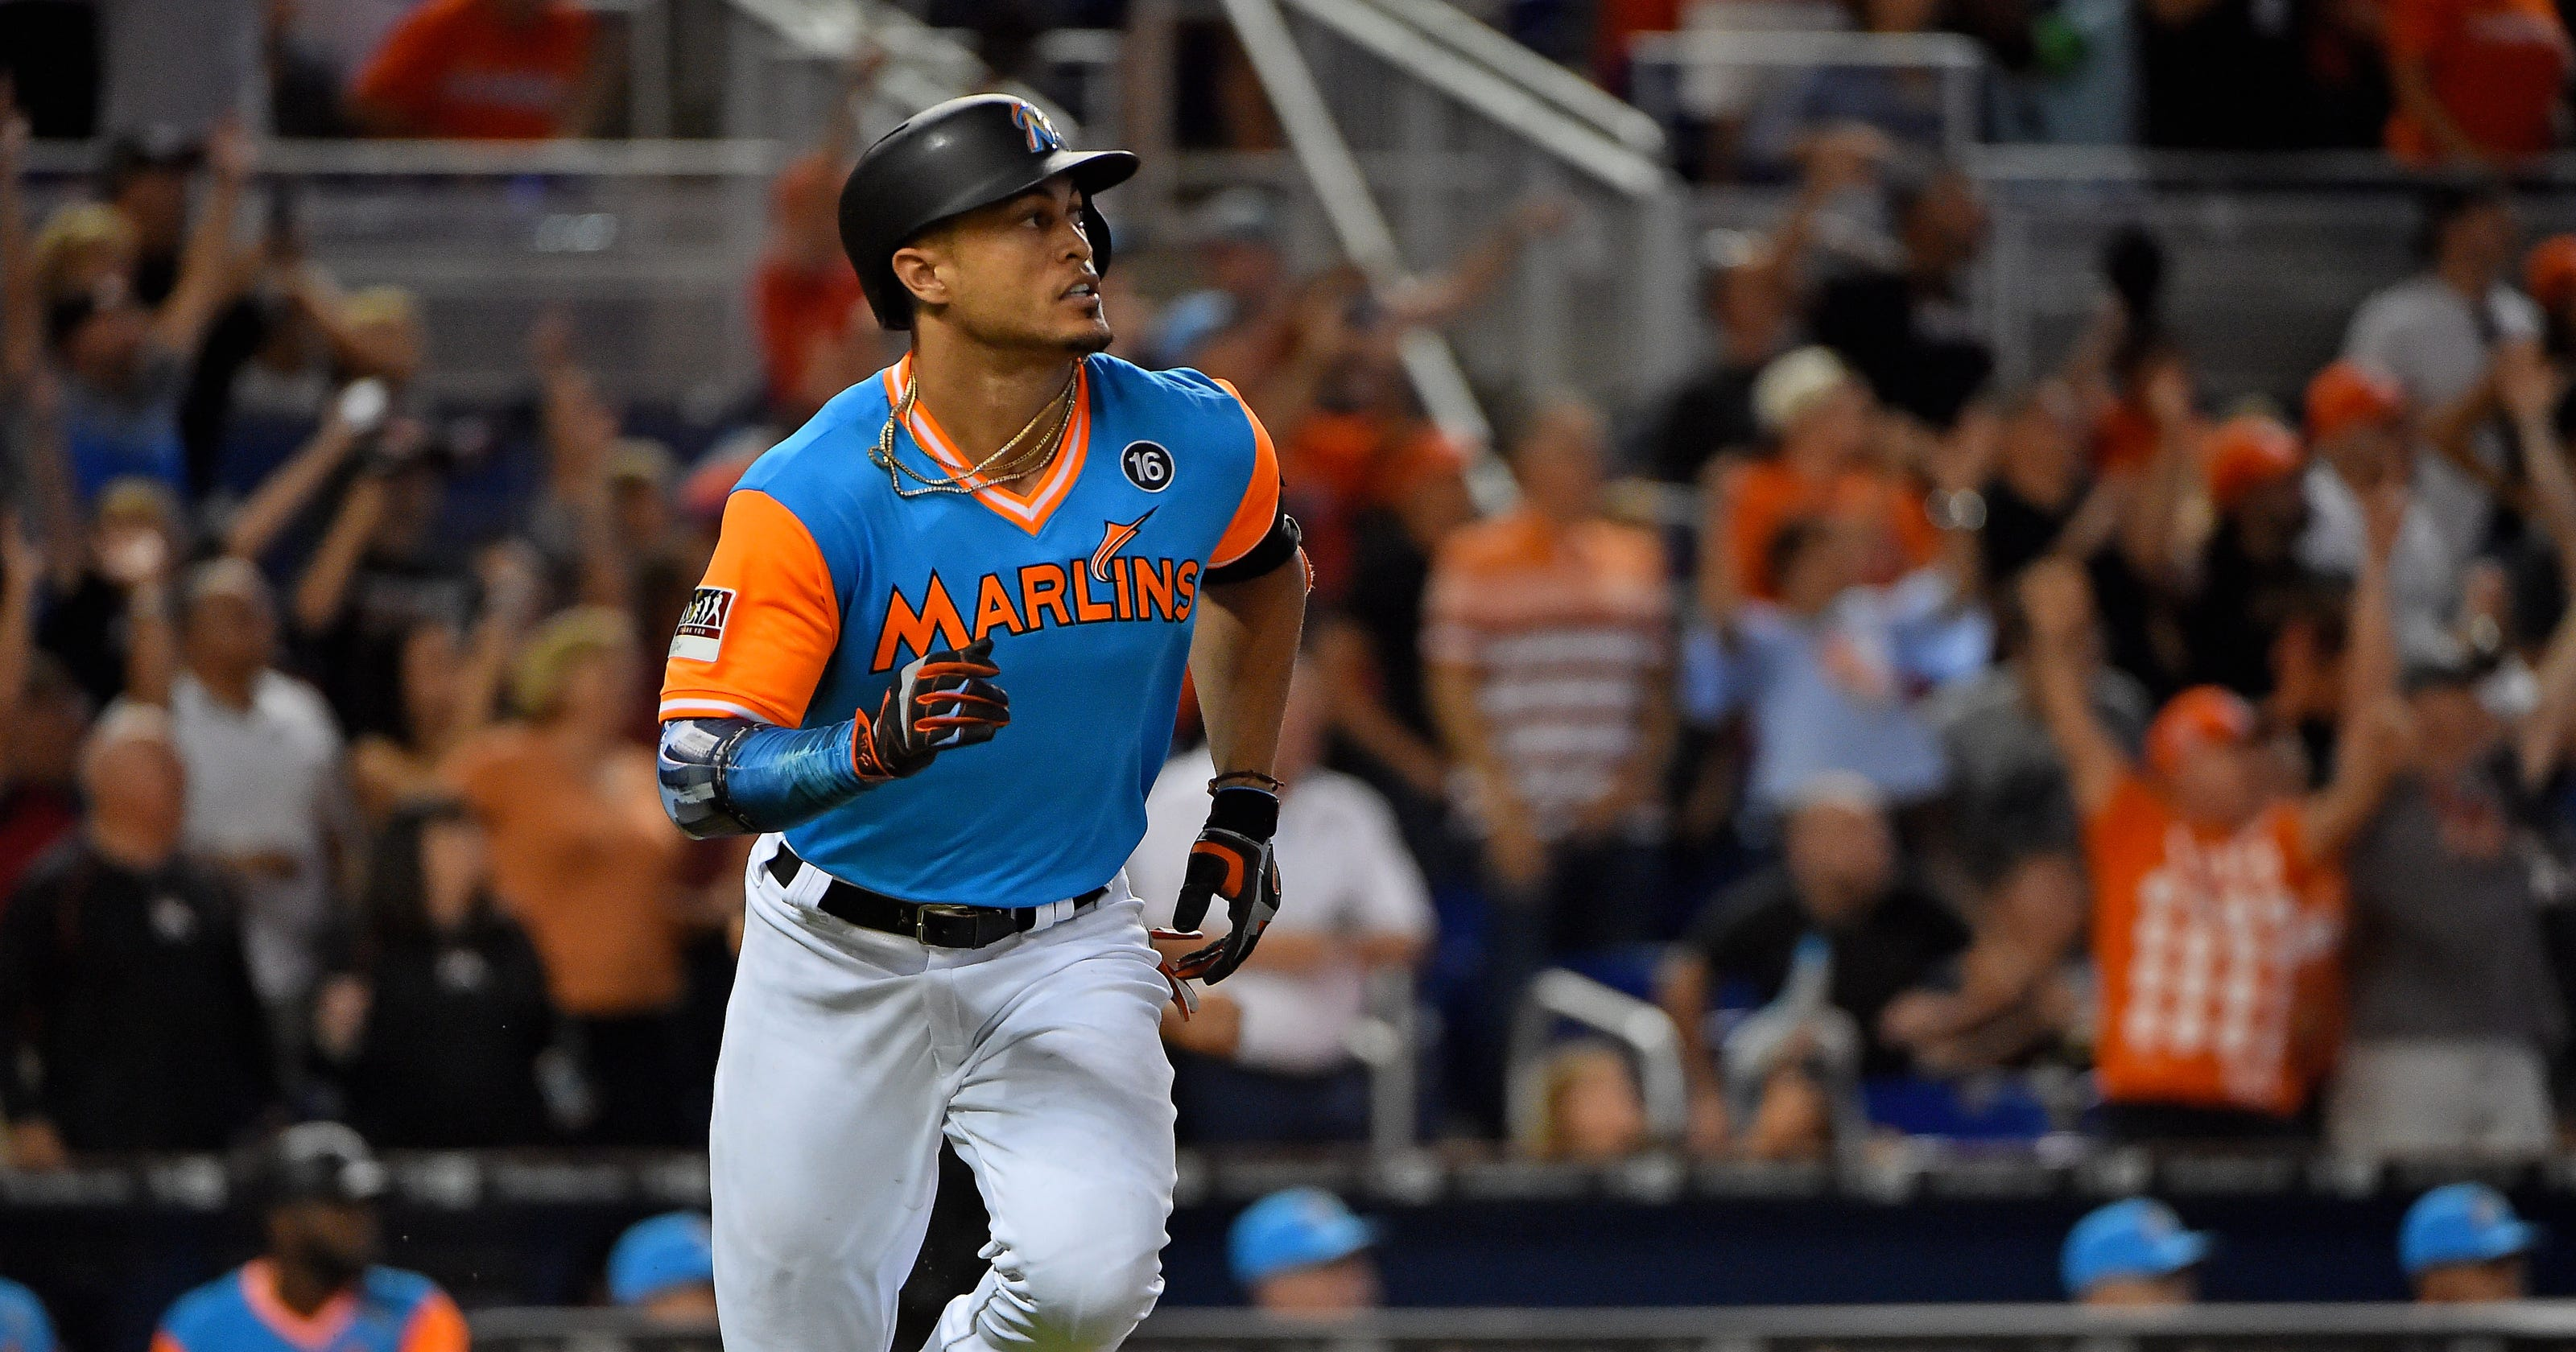 f00a31f20 Giancarlo Stanton  Yankees to acquire Marlins slugger in stunning deal